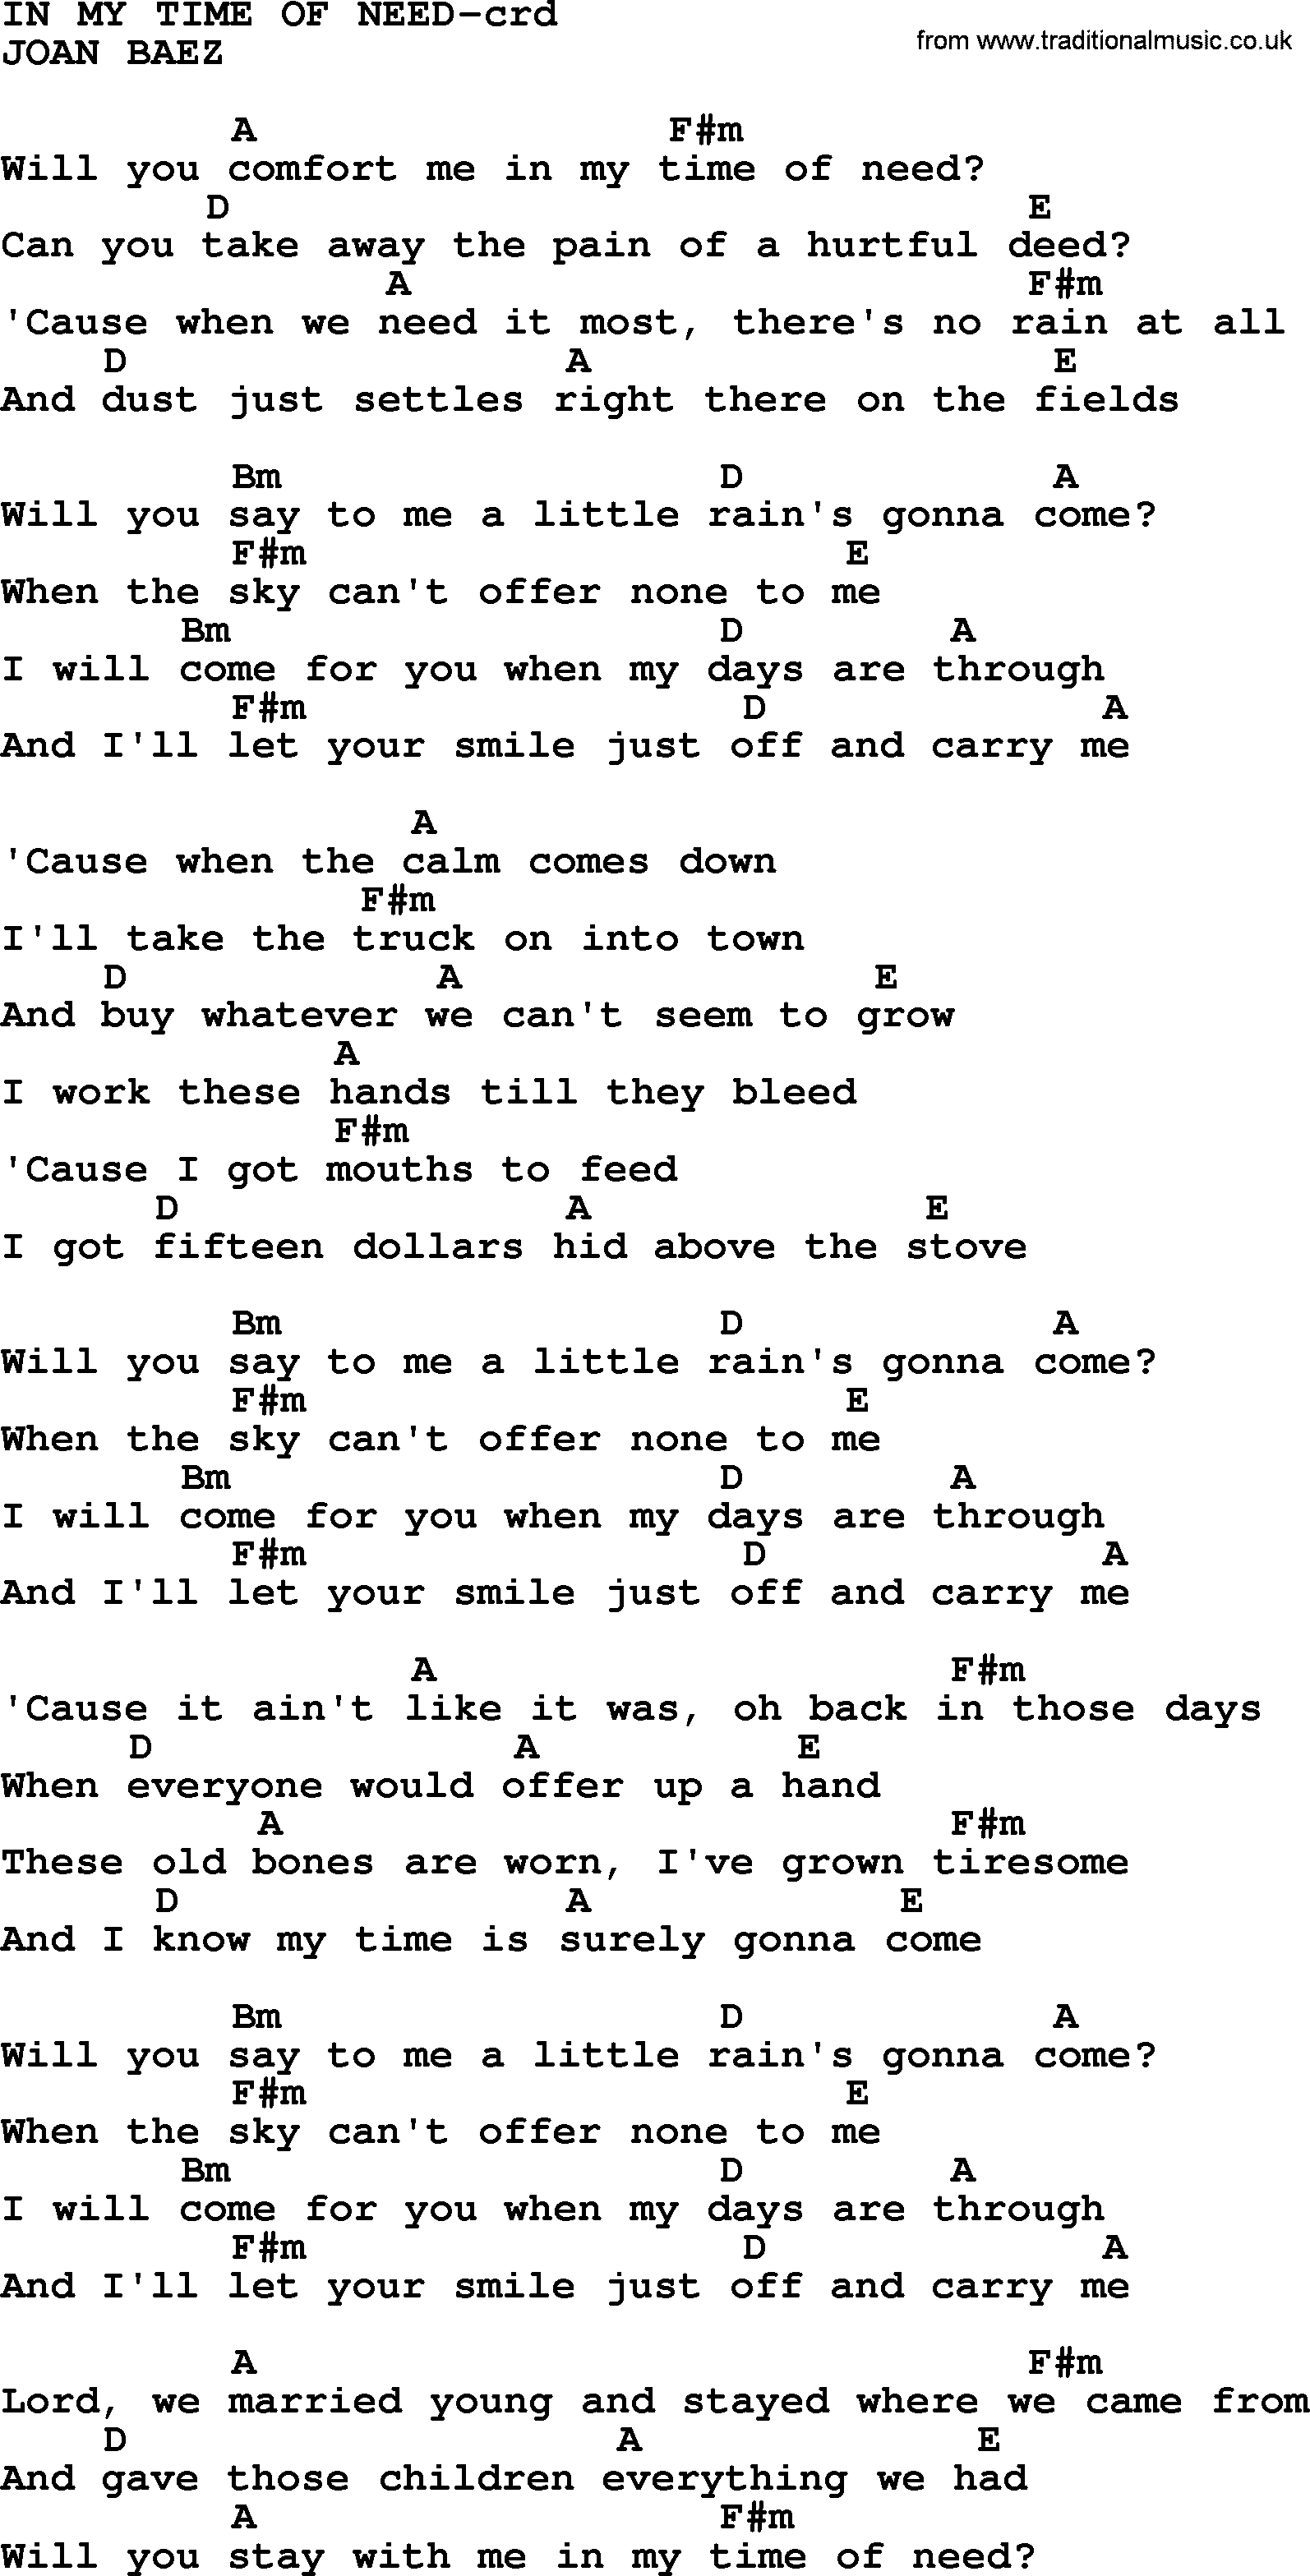 Joan Baez Song In My Time Of Need Lyrics And Chords